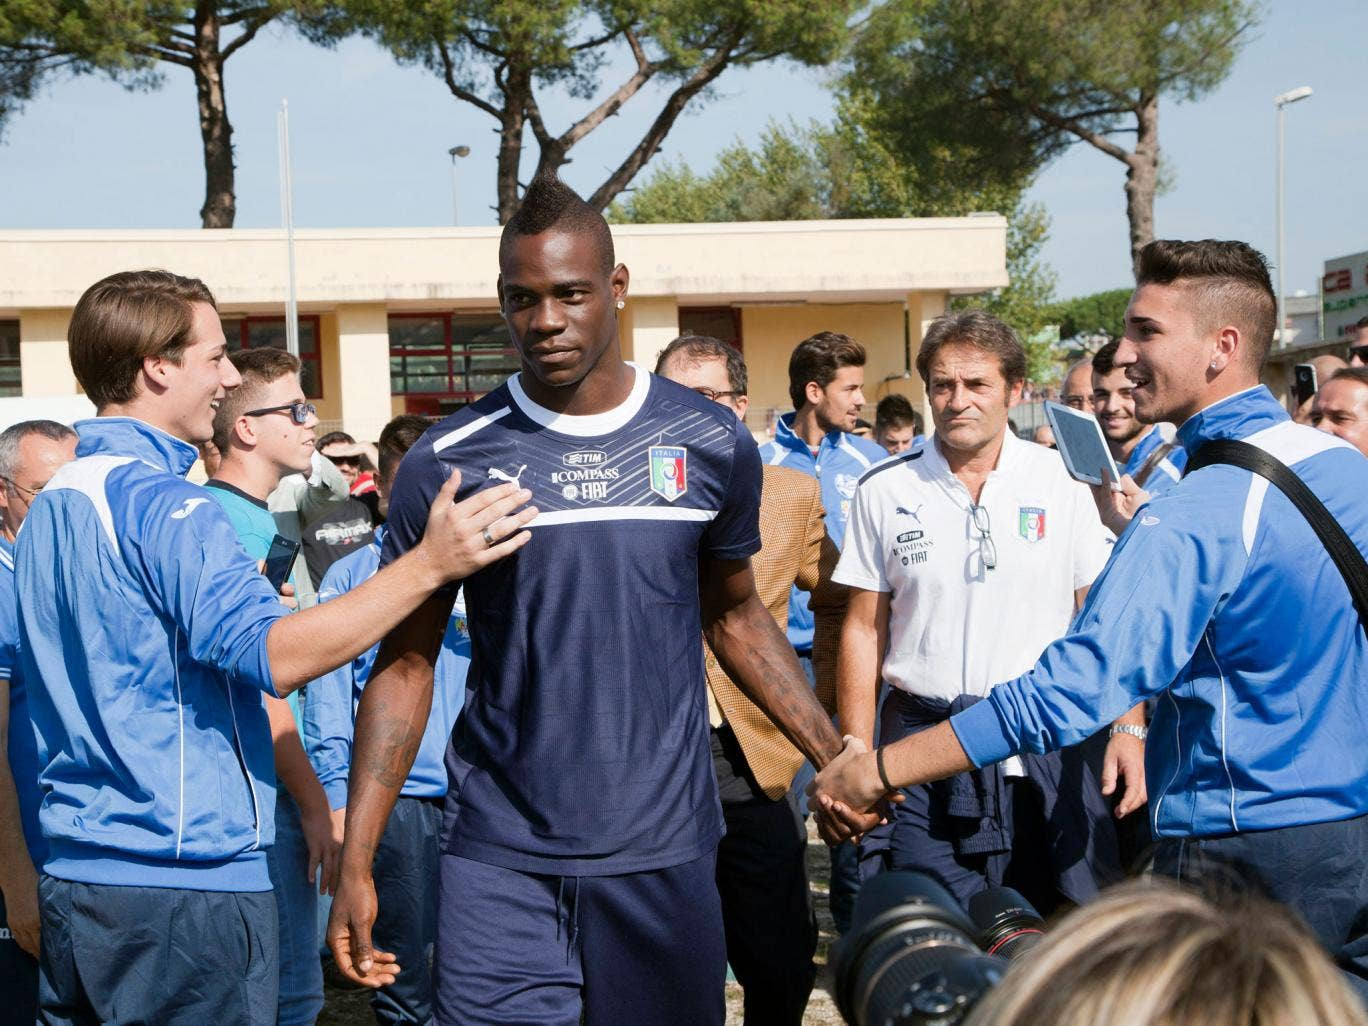 Mario Balotelli is greeted by Italian supporters ahead of their training session in Quarto